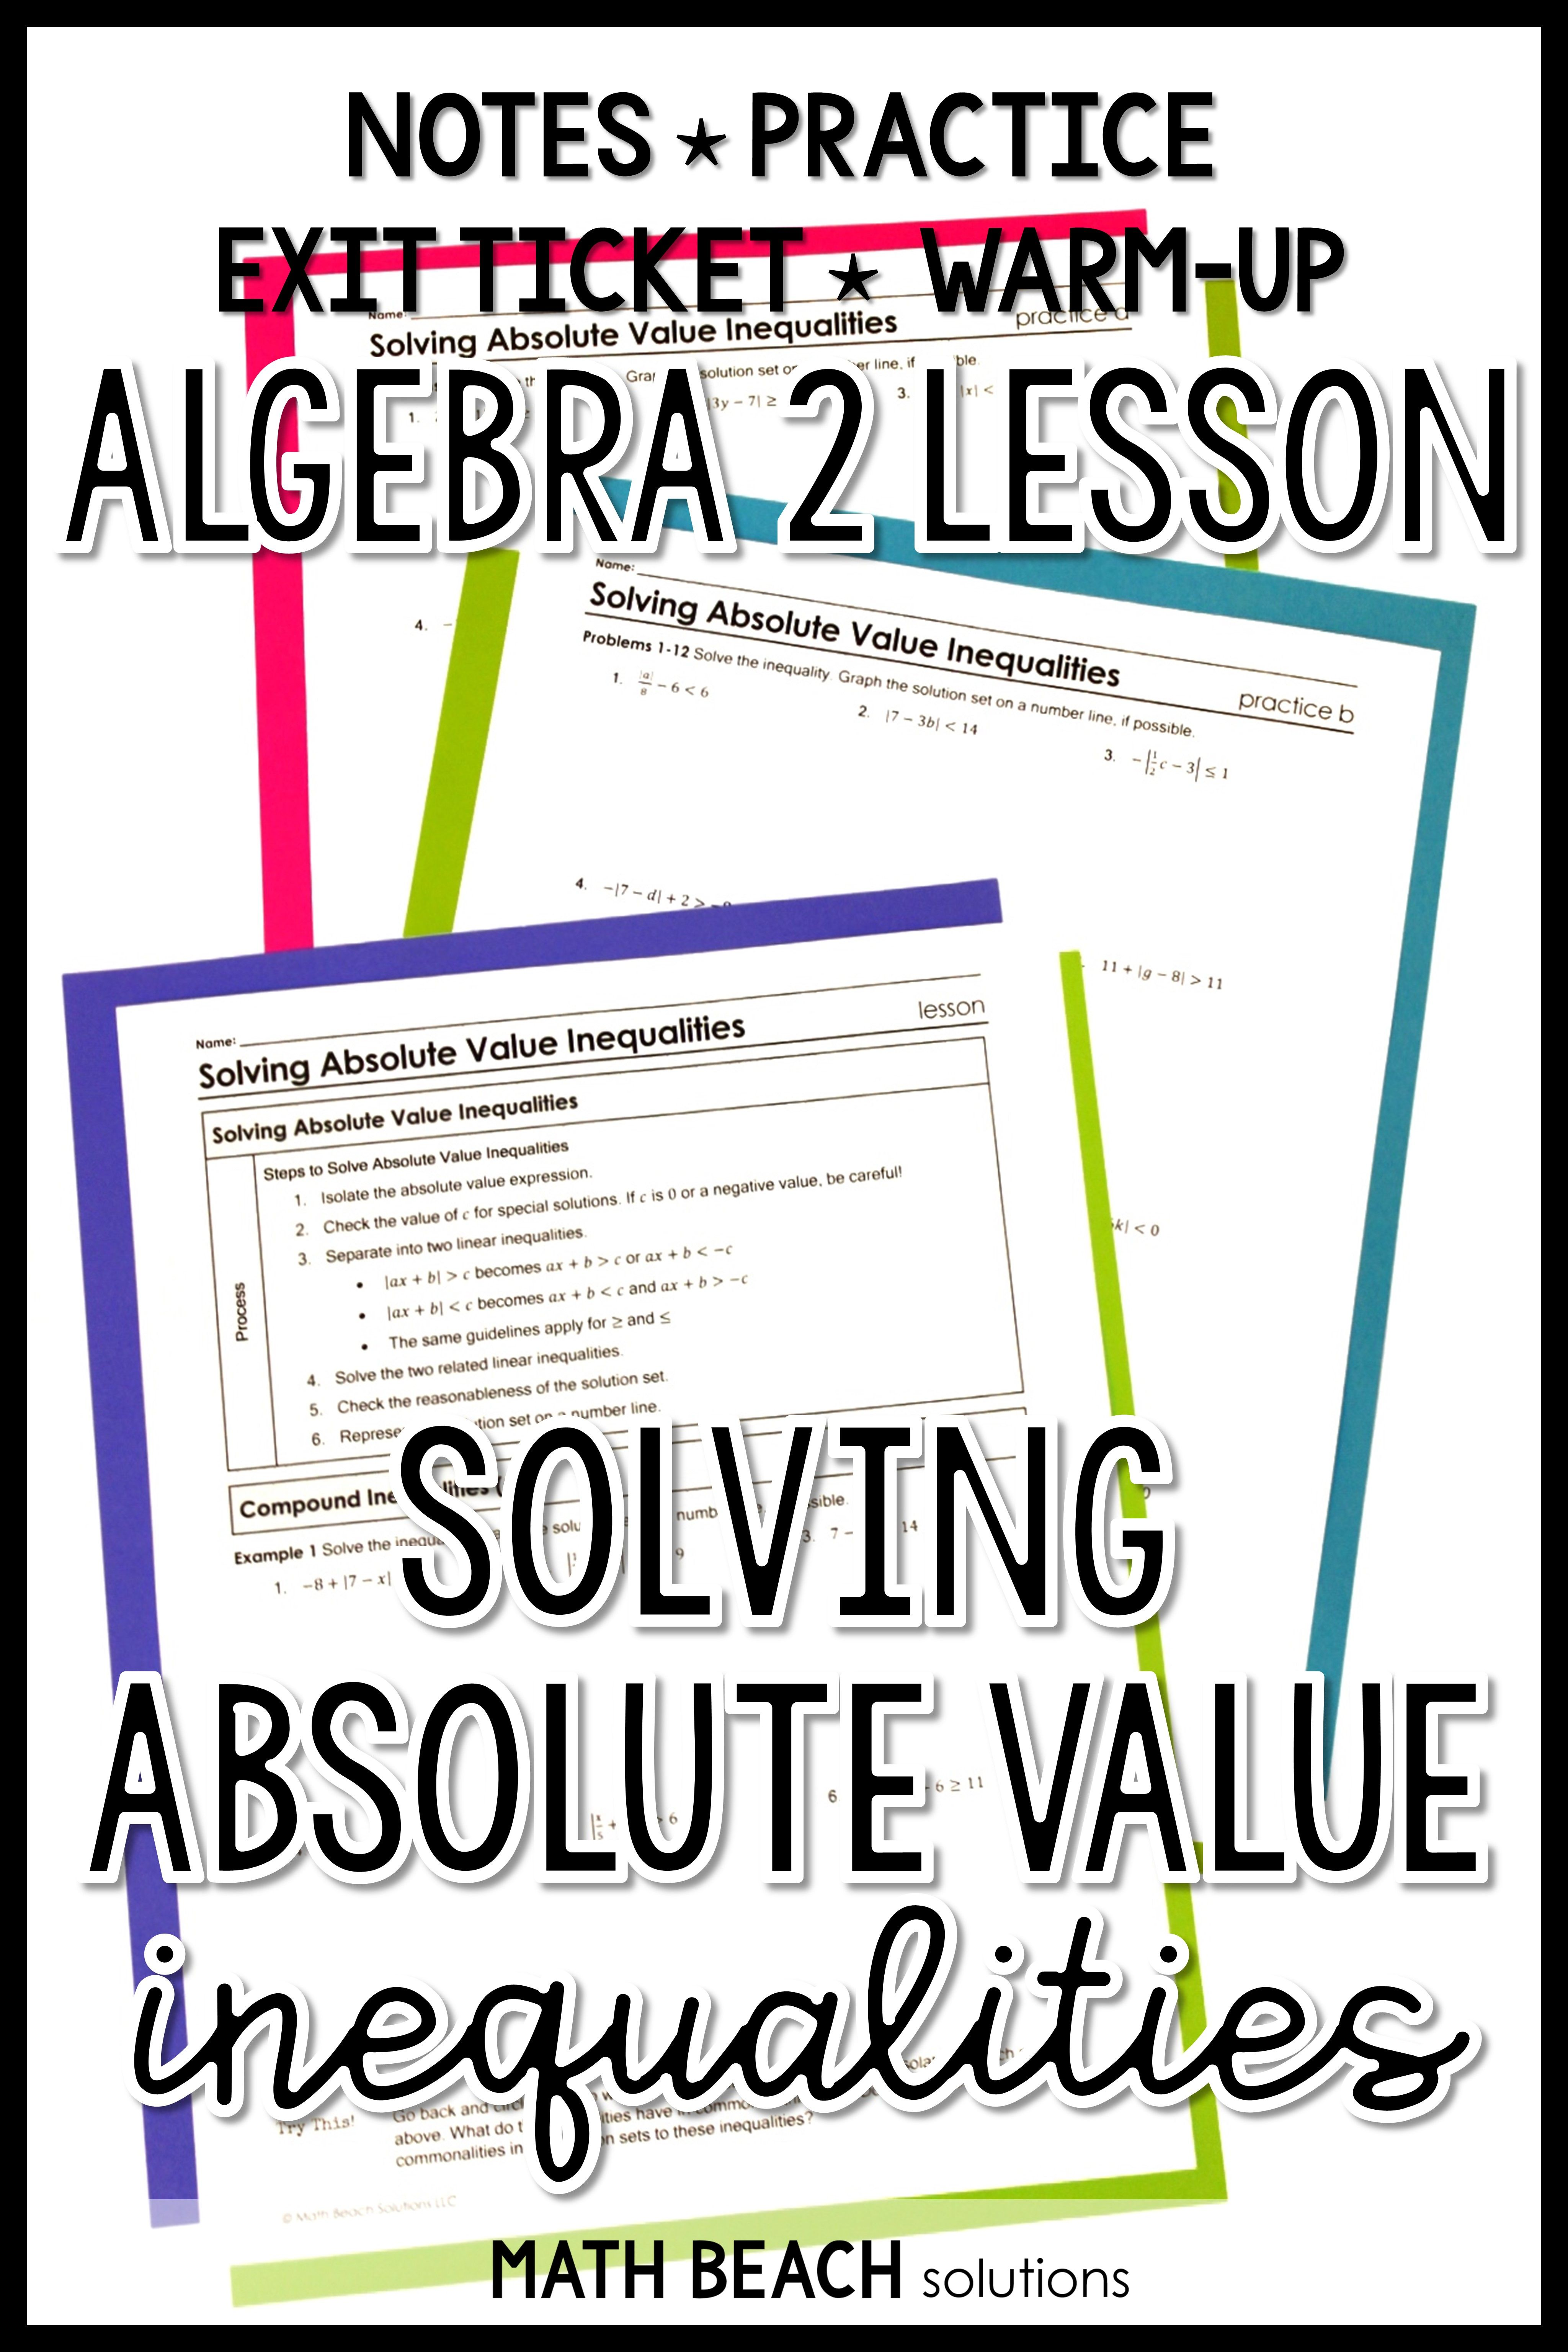 Solving Absolute Value Inequalities Lesson Absolute Value Inequalities Absolute Value Algebra Worksheets